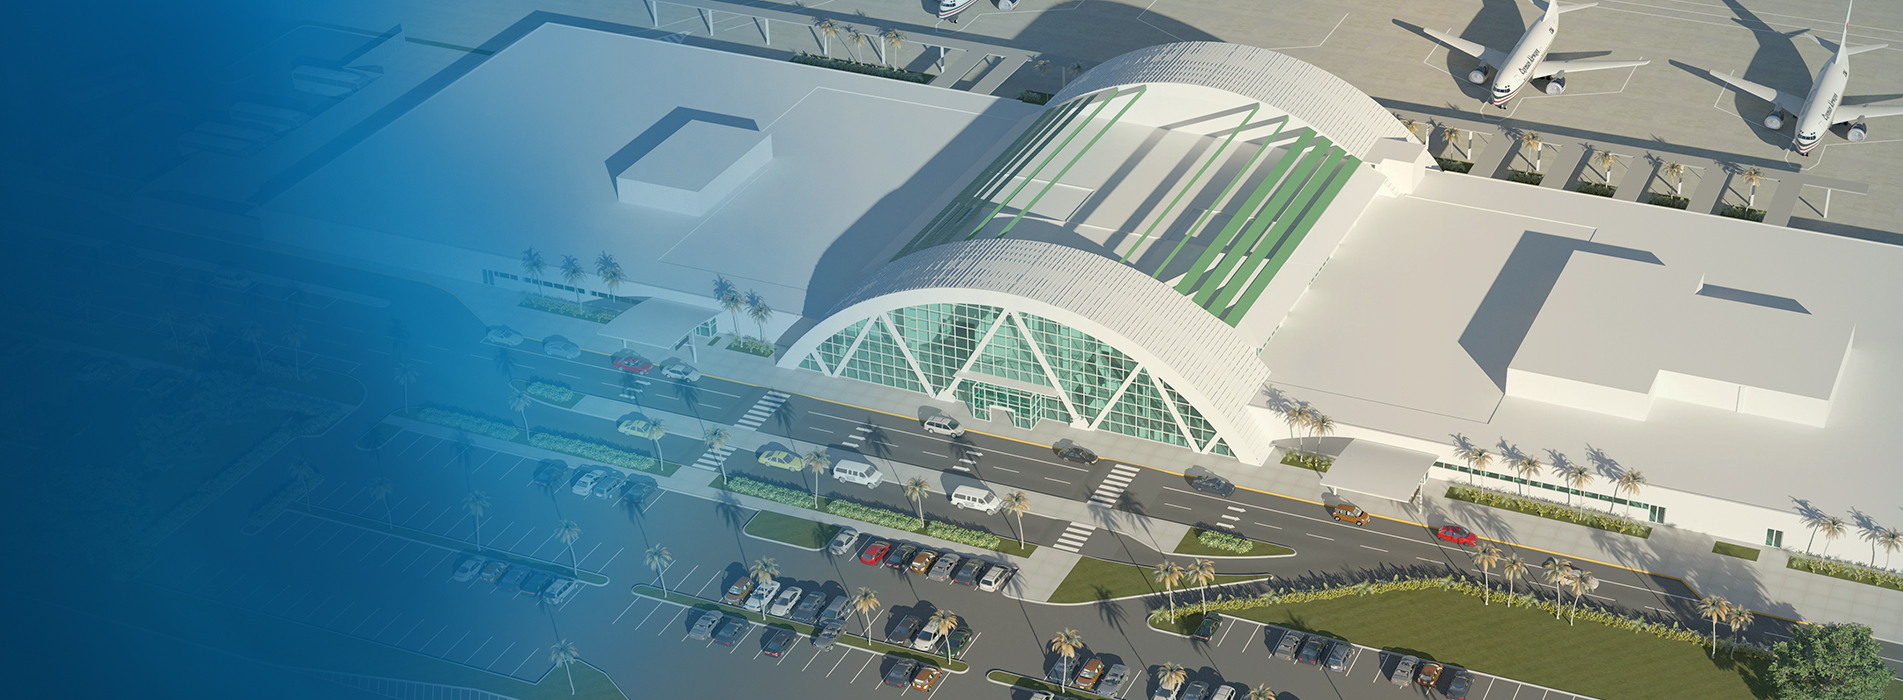 Voted Caribbean Airport of the Year 2020 by Caribbean Journal